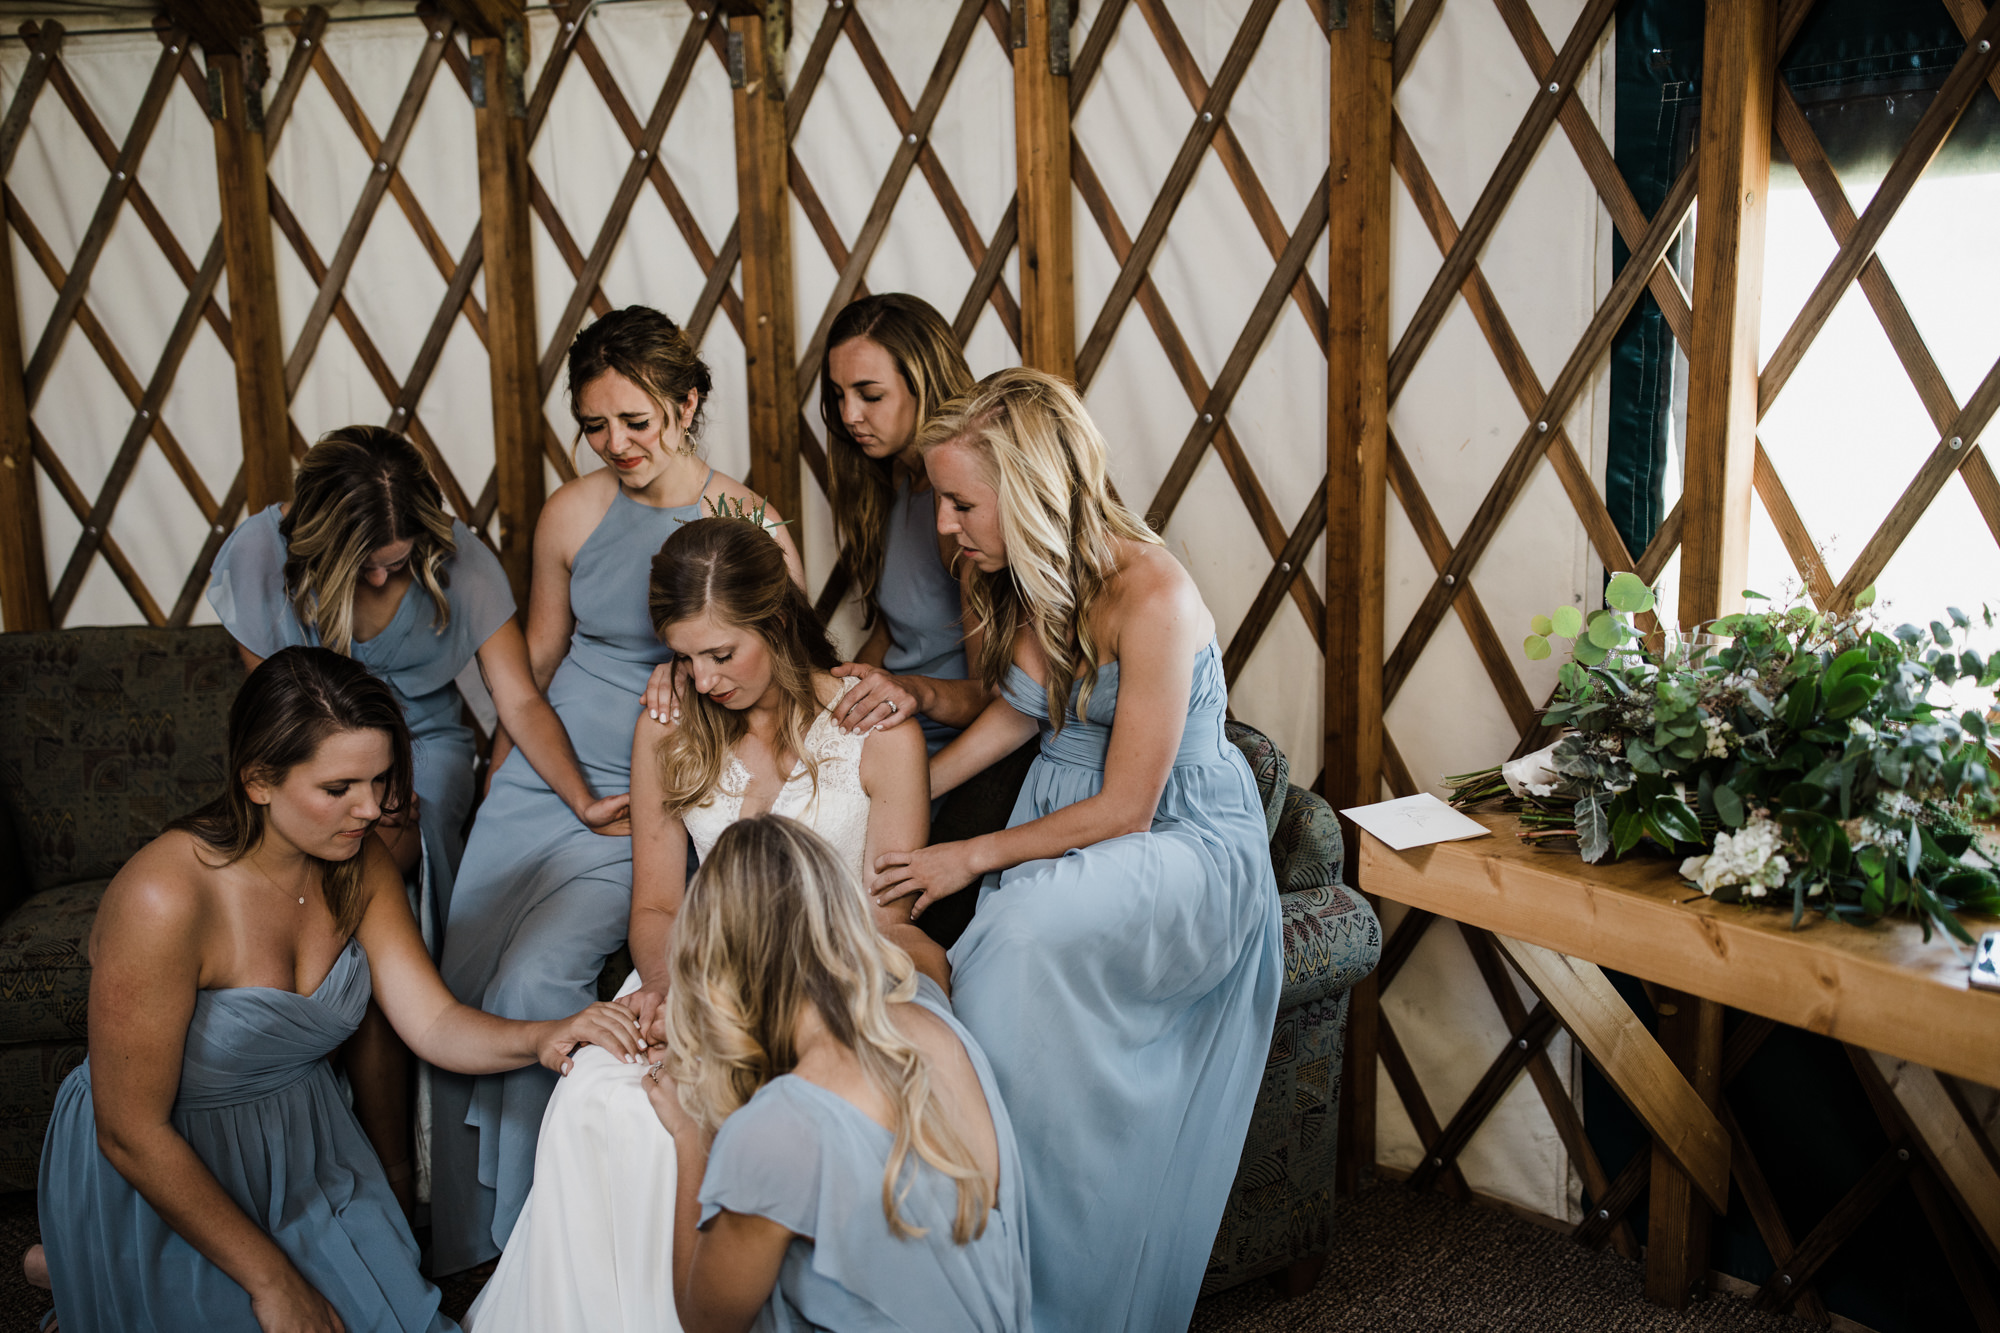 intimate wedding in crested butte, colorado | destination adventure wedding photographers | the hearnes adventure photography | www.thehearnes.com